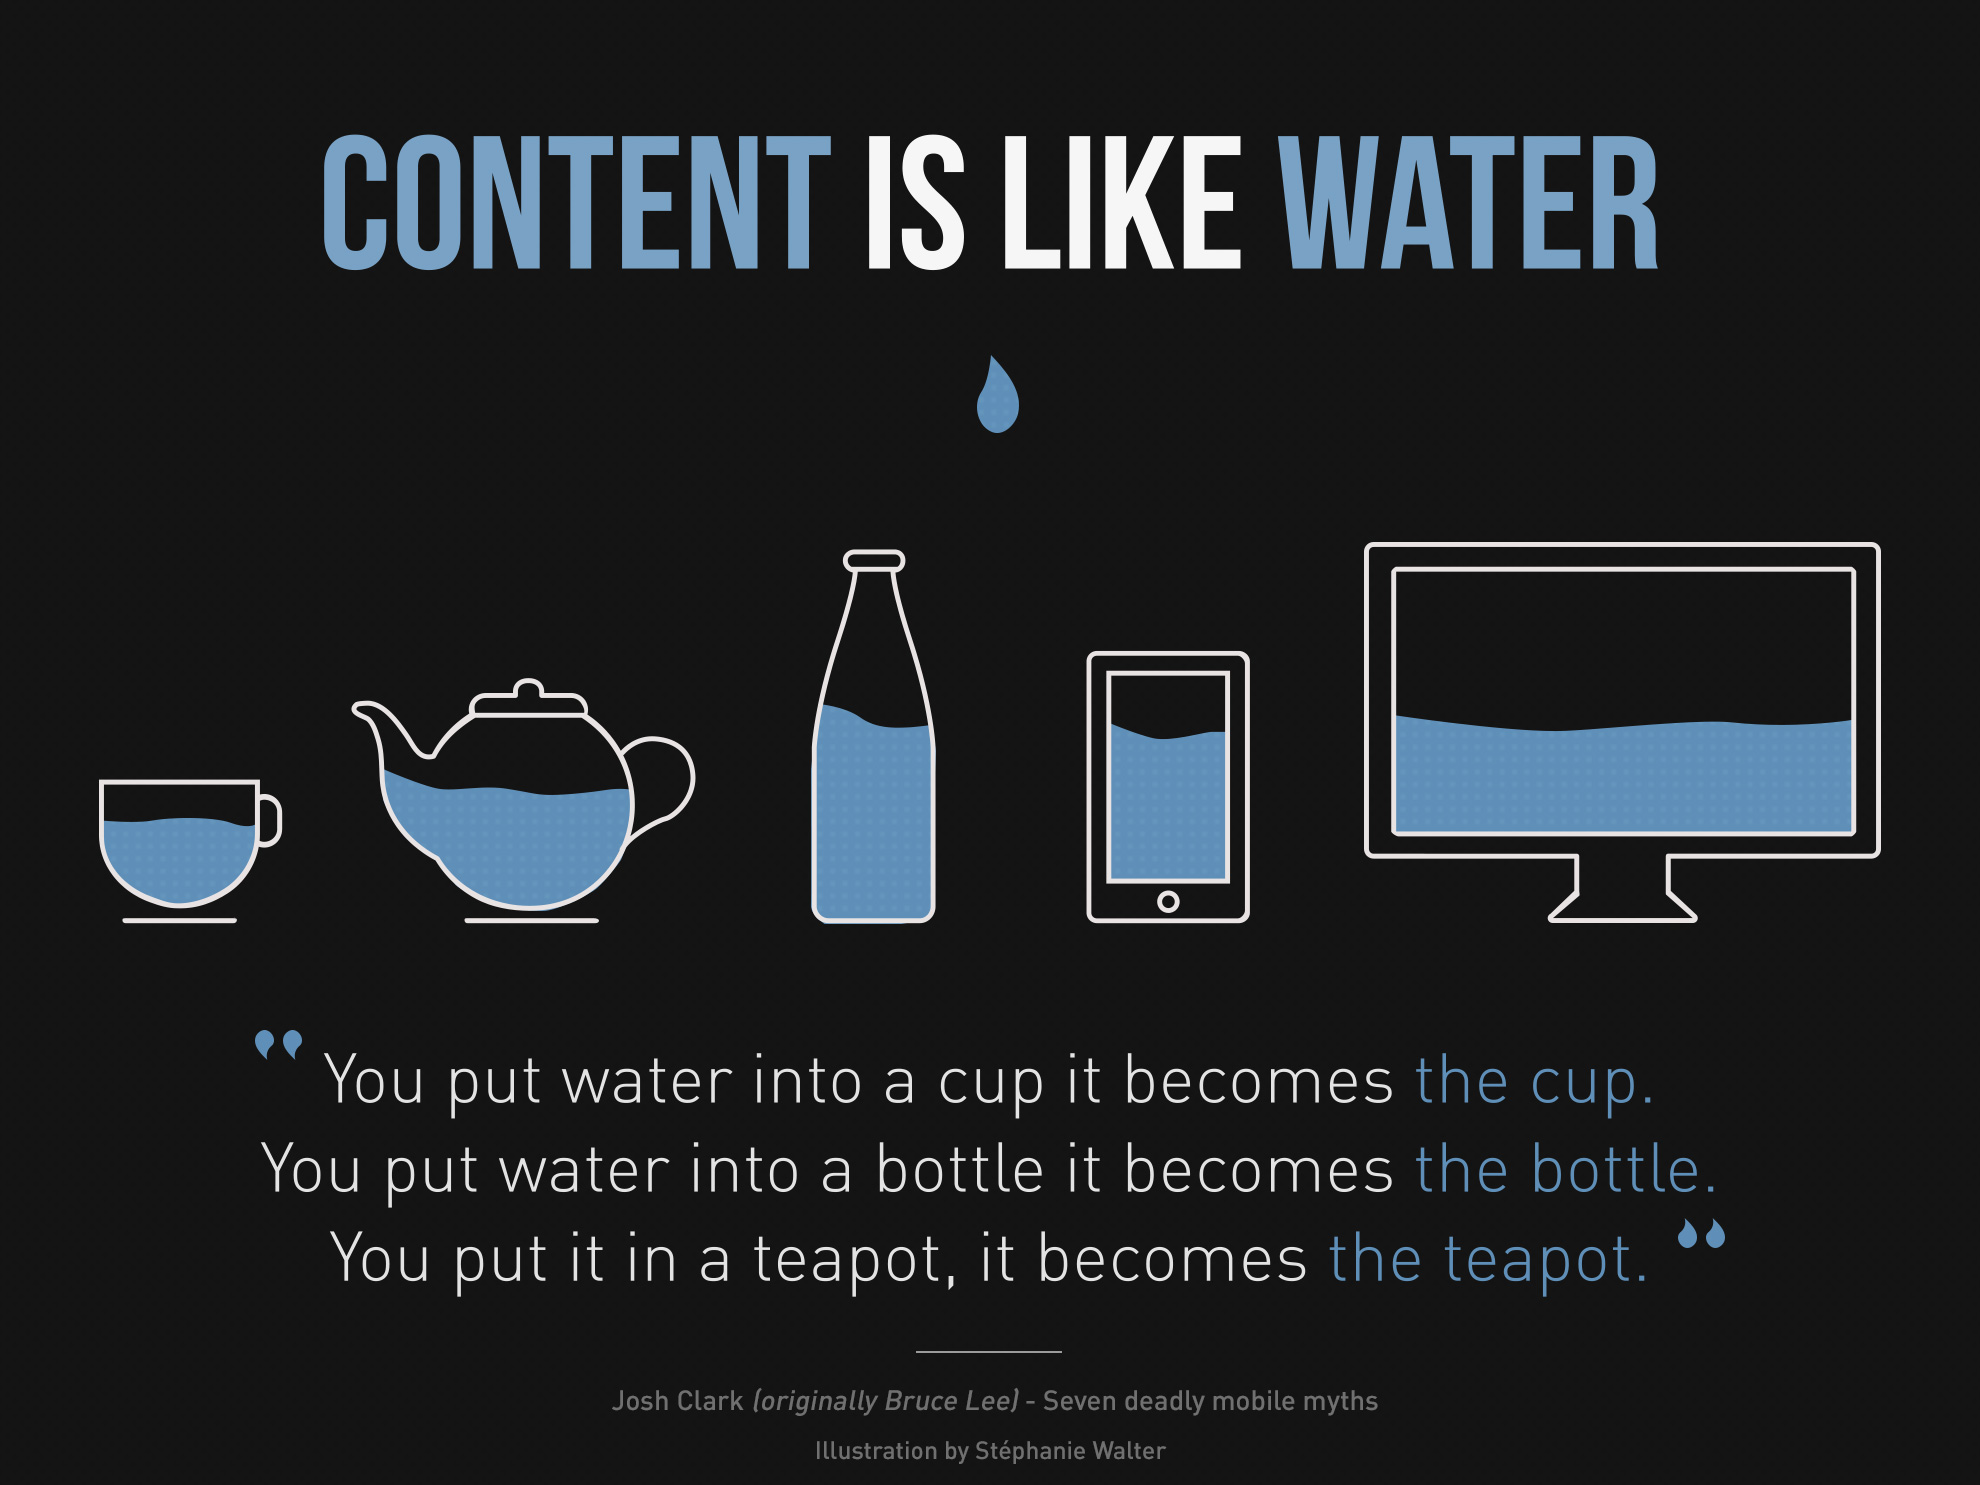 Content is like water, a saying that illustrates the principles of RWD.